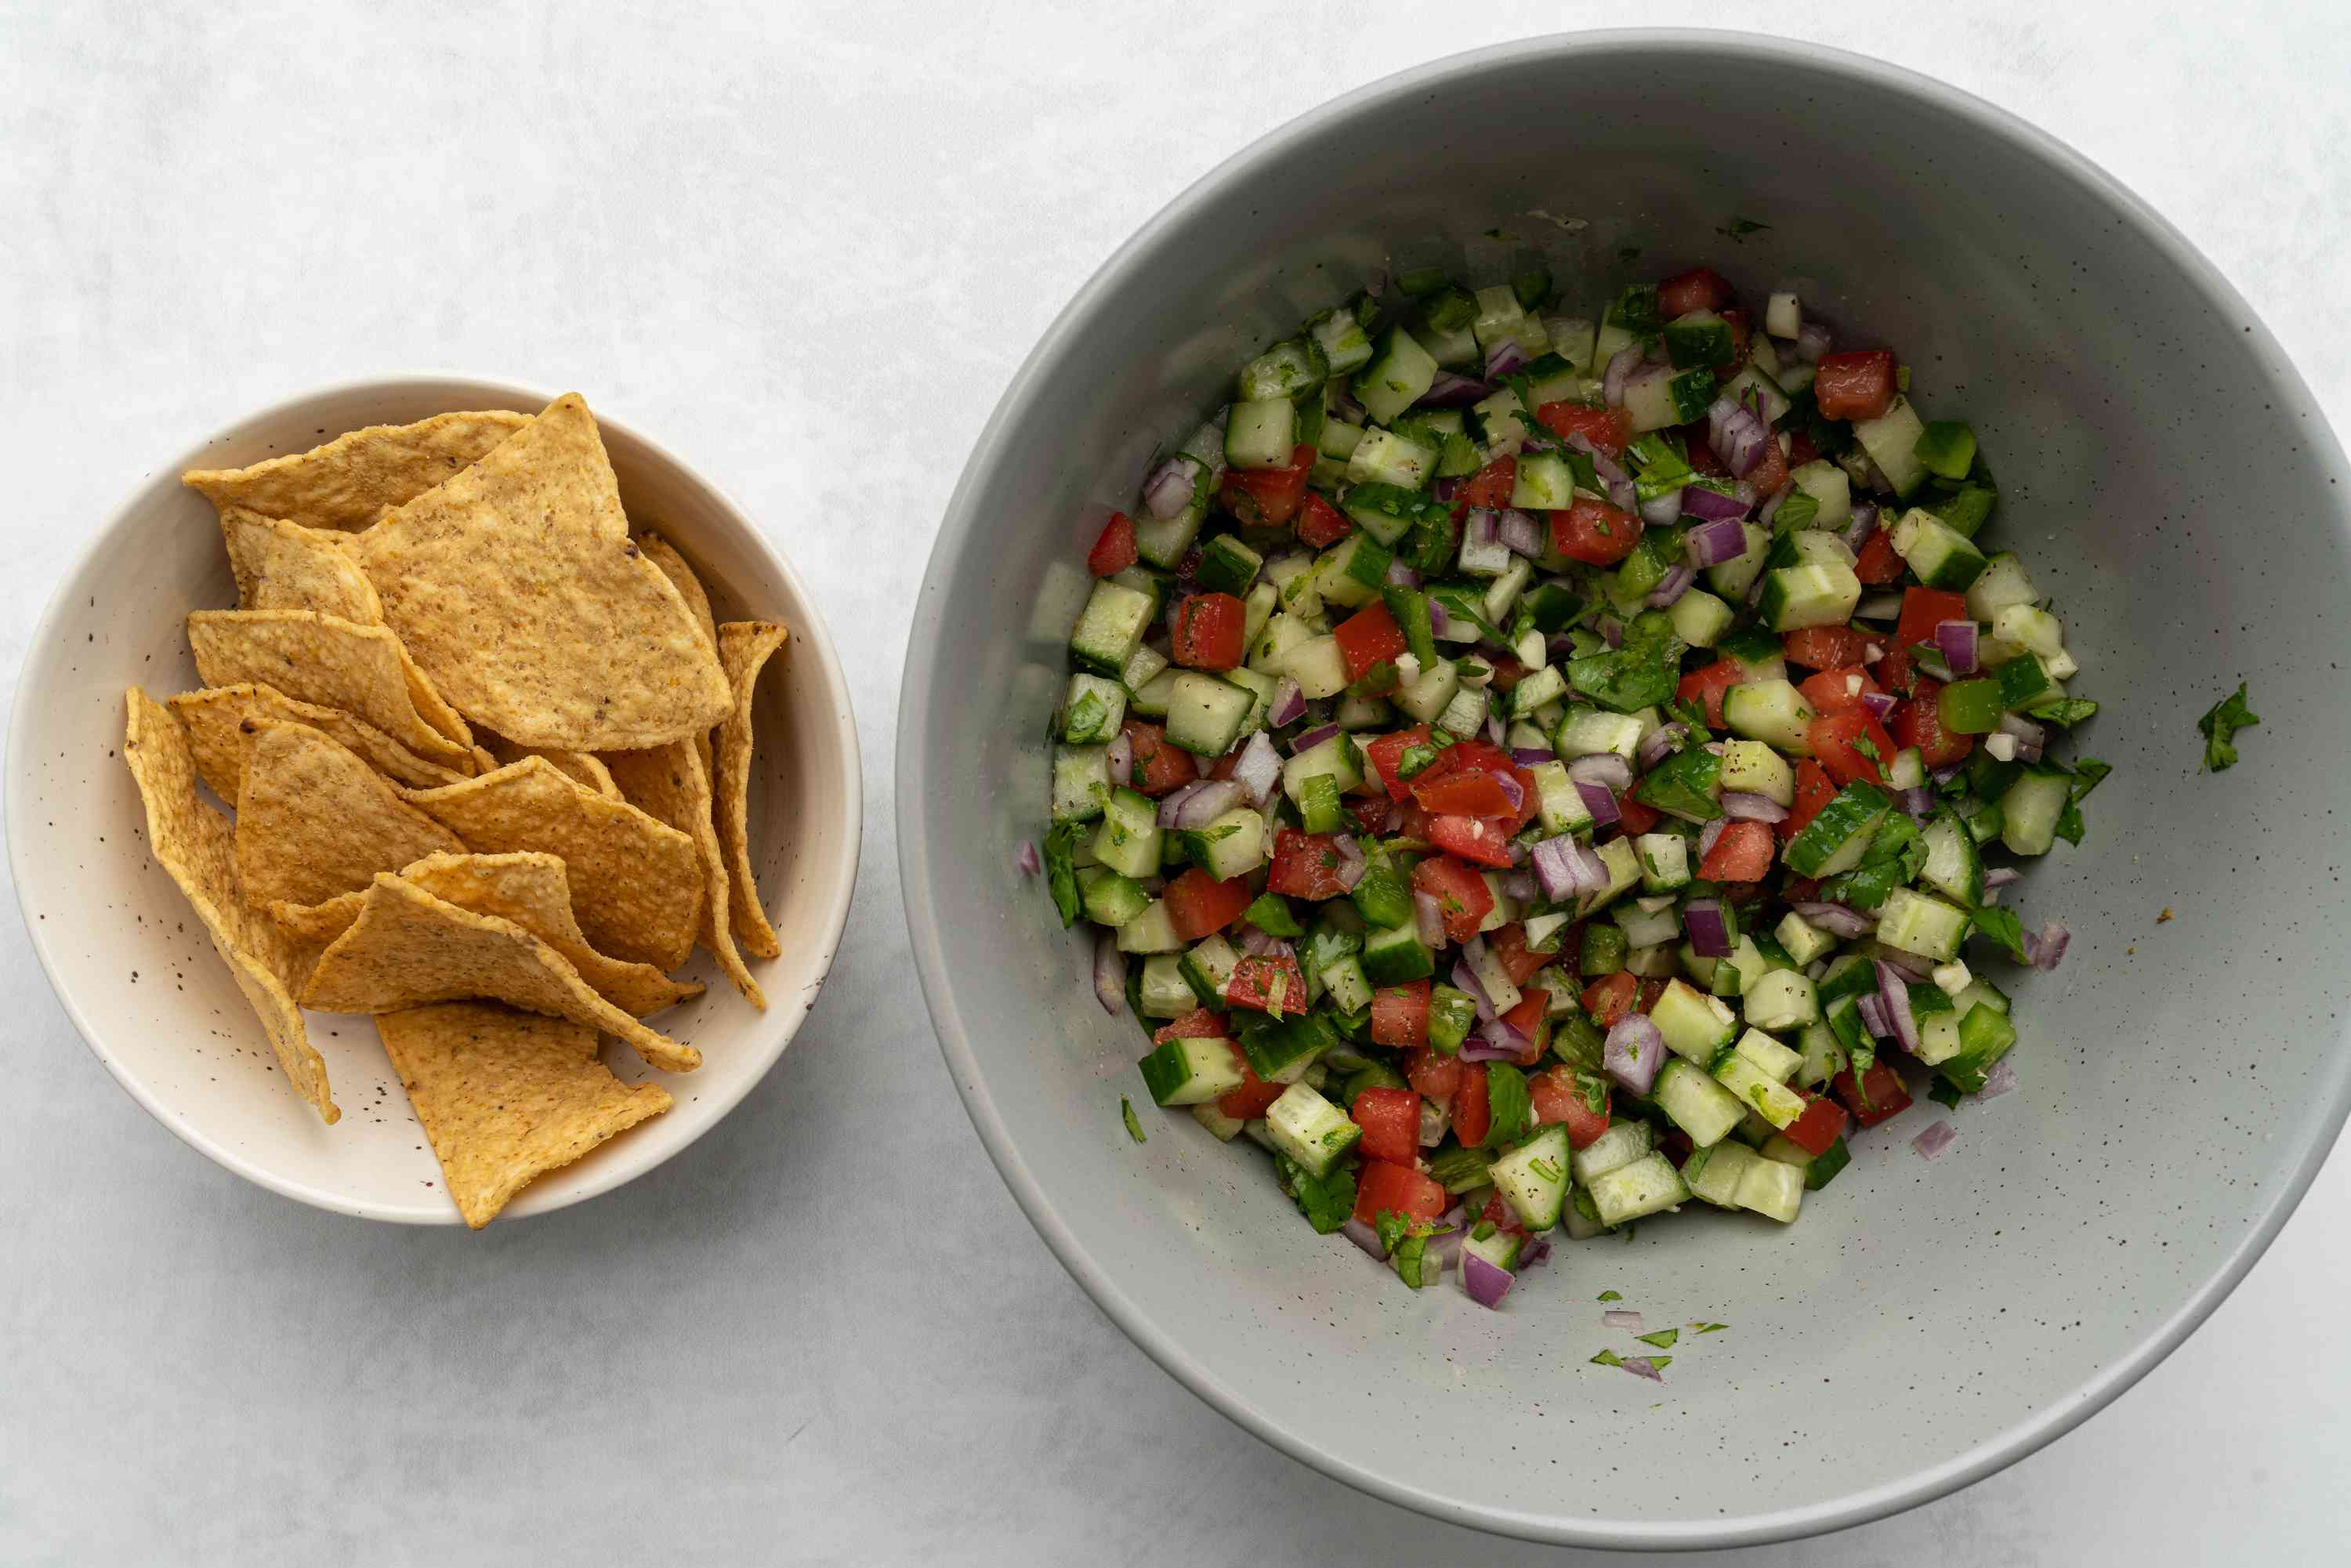 Cucumber Salsa with chips on the side